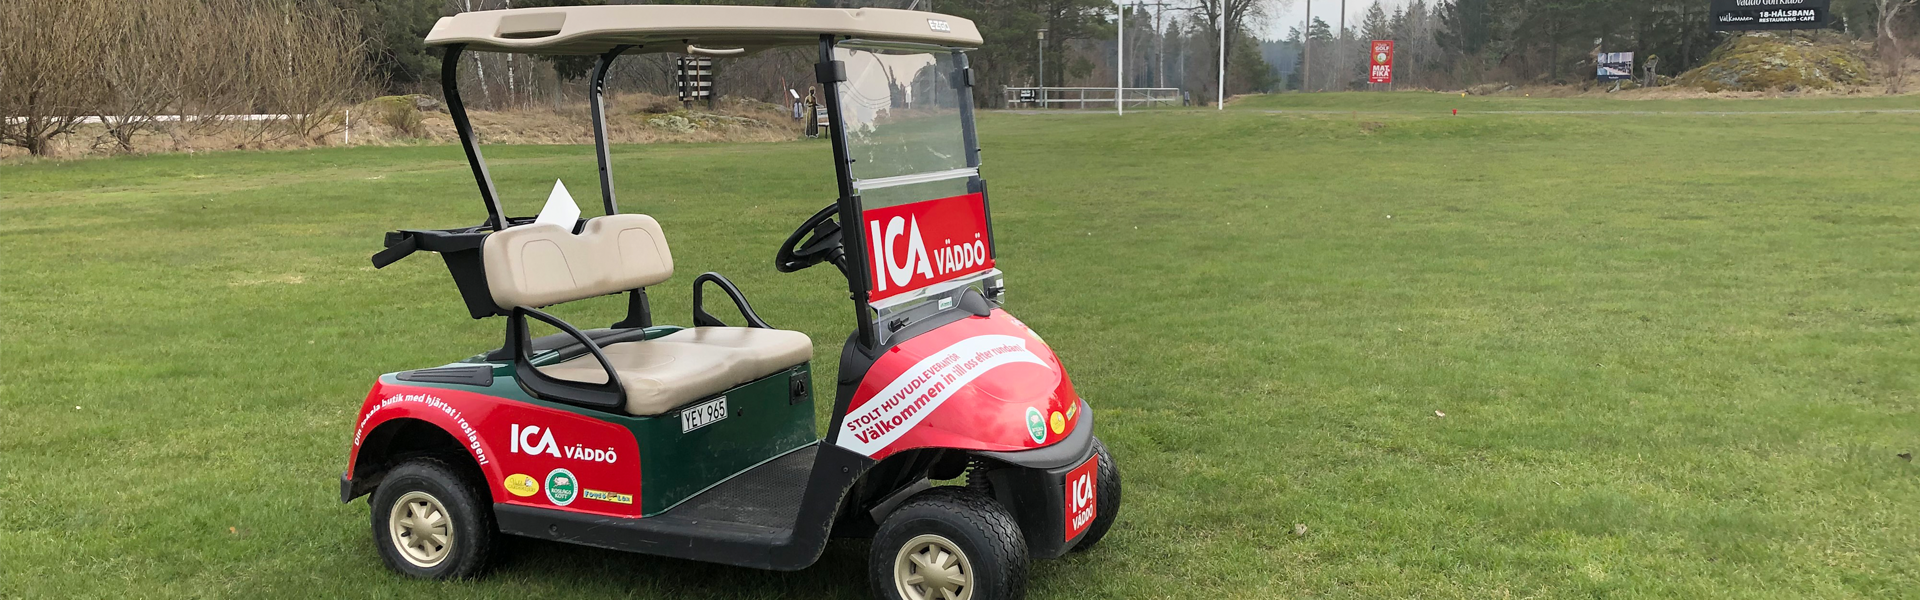 ica_golfbil